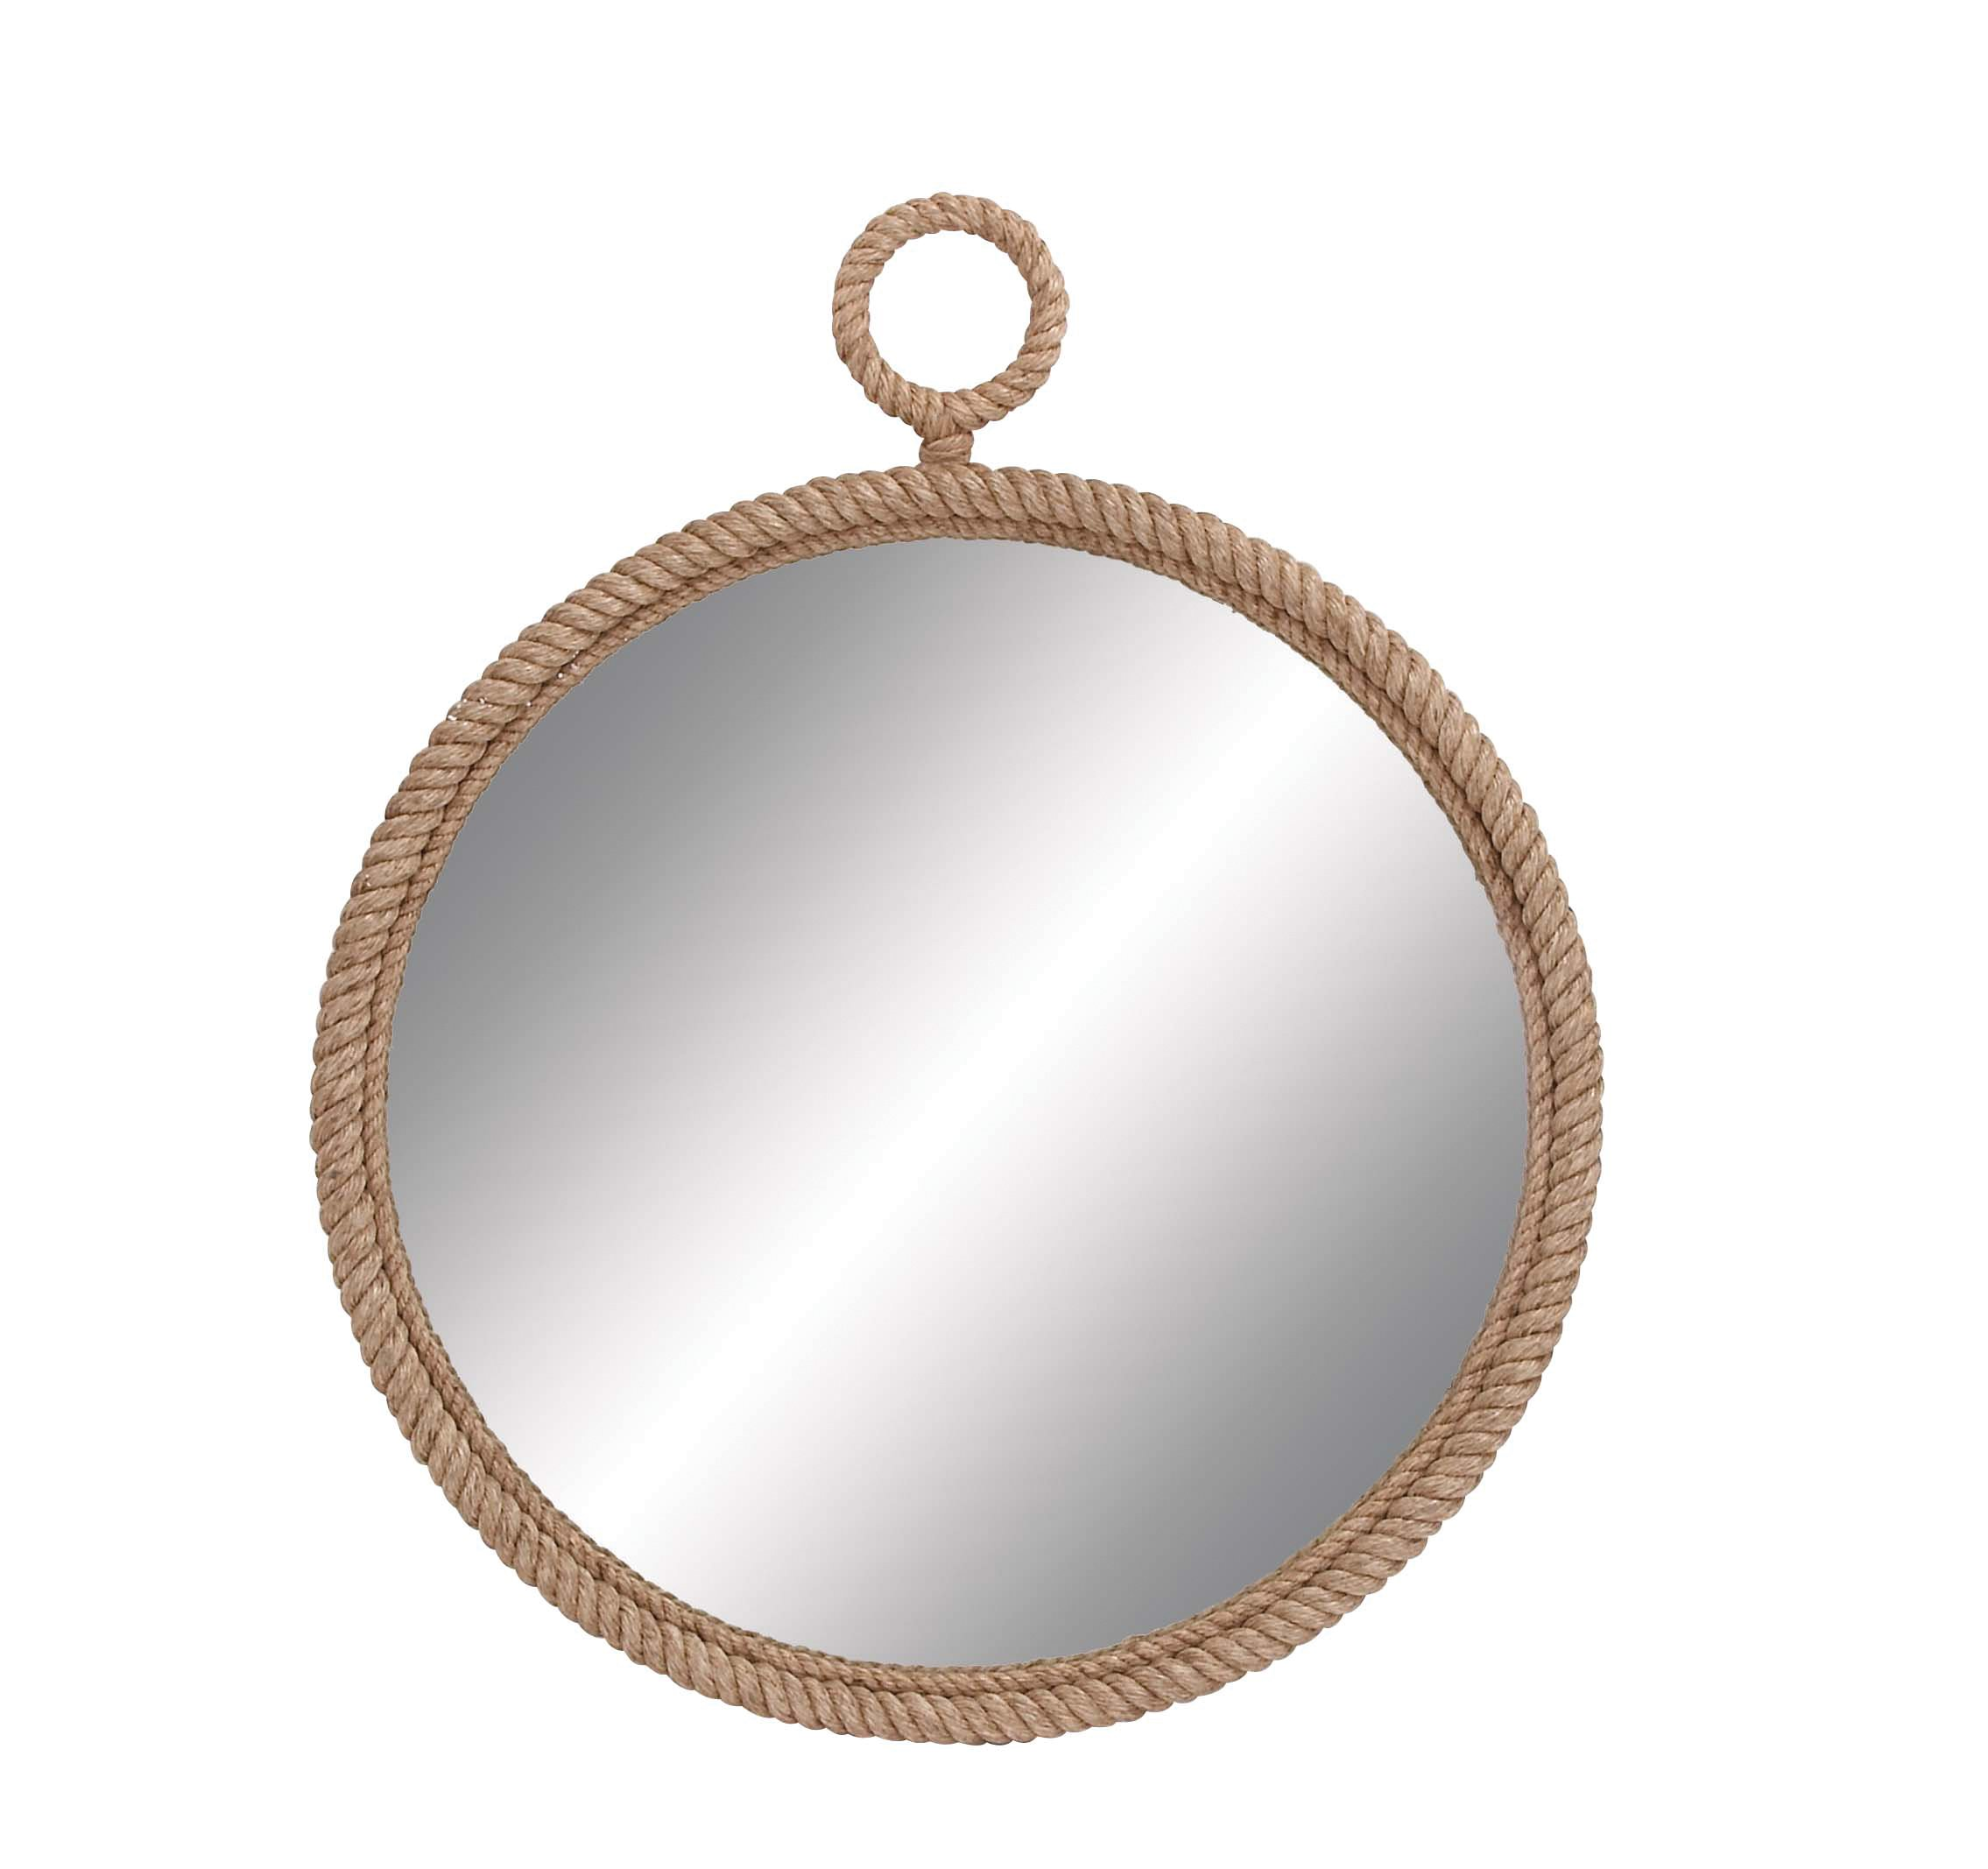 Deco 79 Wood Pier Rope Mirror, 36-Inch - Suitable to use as a decorative item Best for both indoor and outdoor use This product is manufactured in Philippines - bathroom-mirrors, bathroom-accessories, bathroom - 718WiZNt5pL -